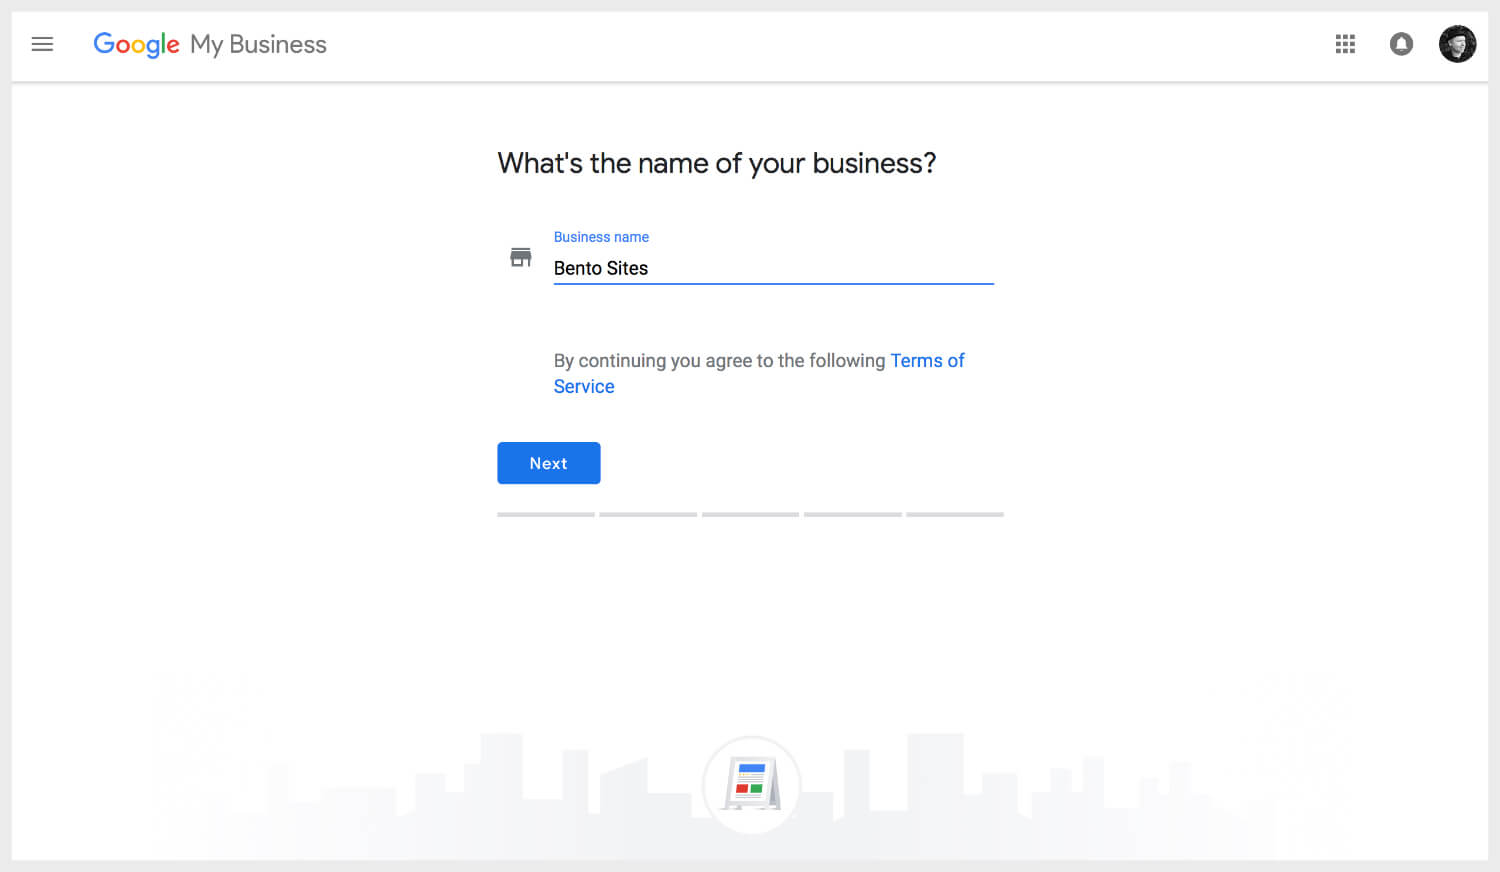 Adding business name on Google My Business